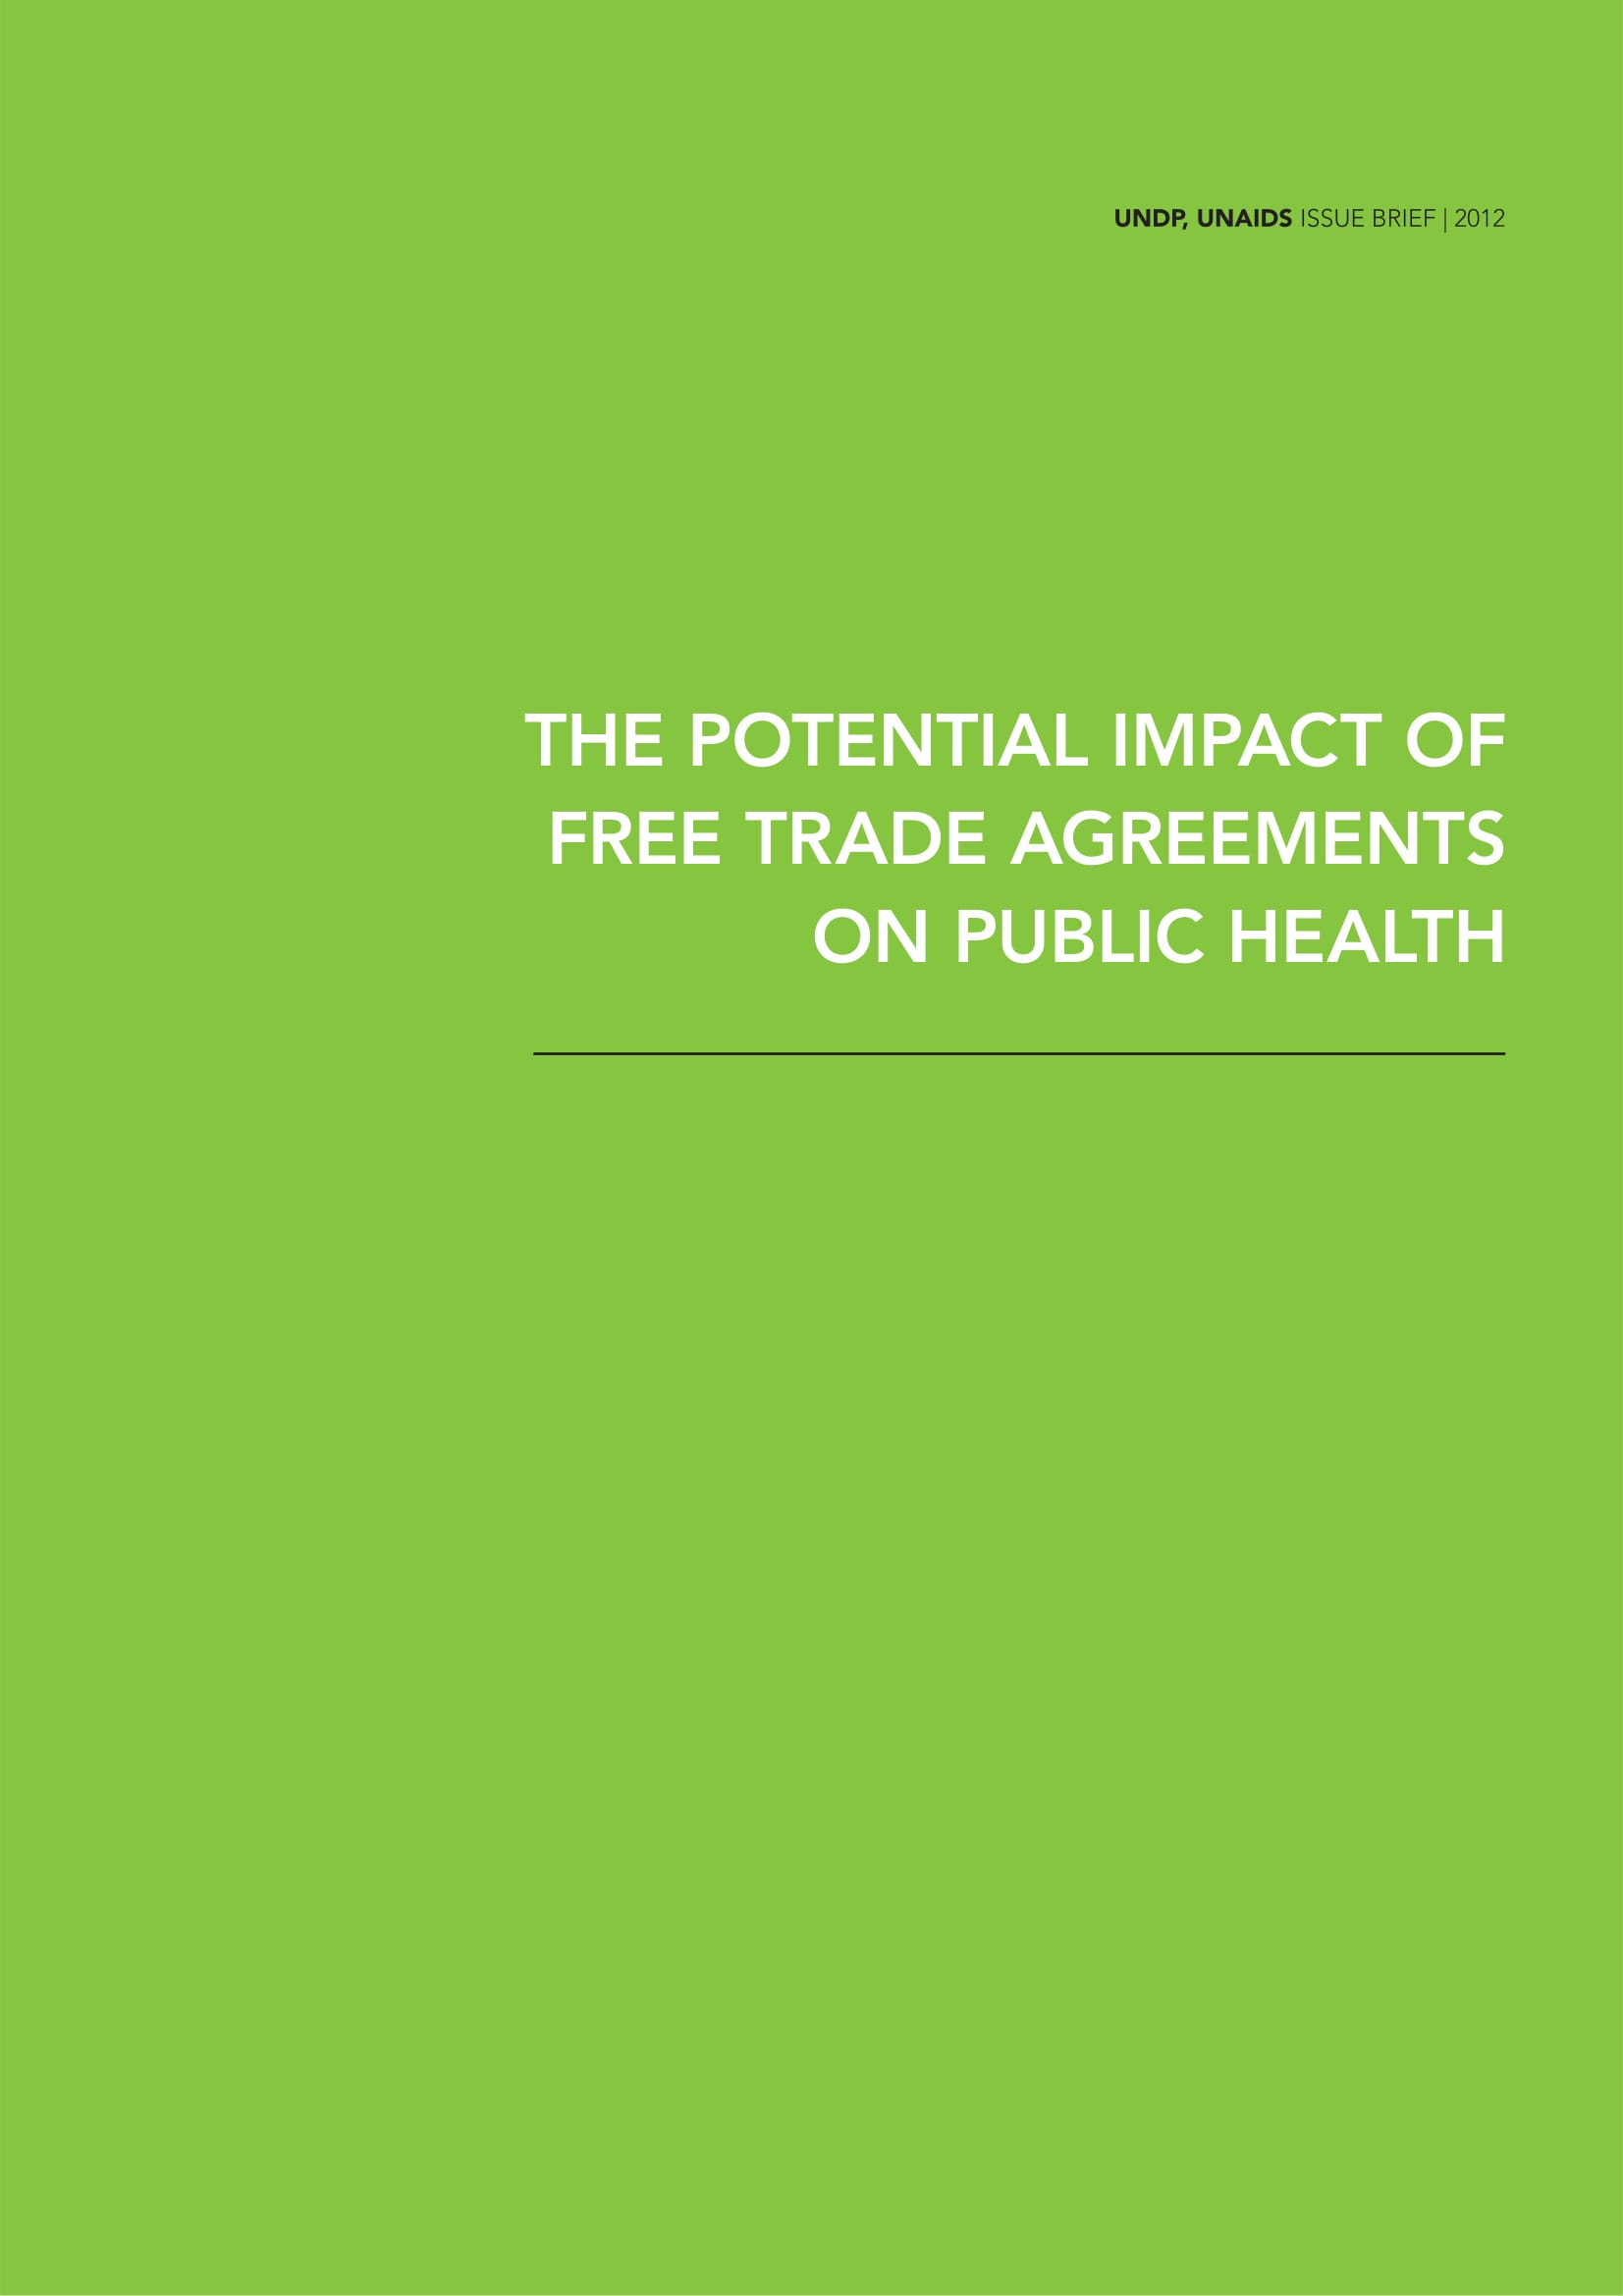 The Potential Impact of Free Trade Agreements on Public Health: Issue Brief